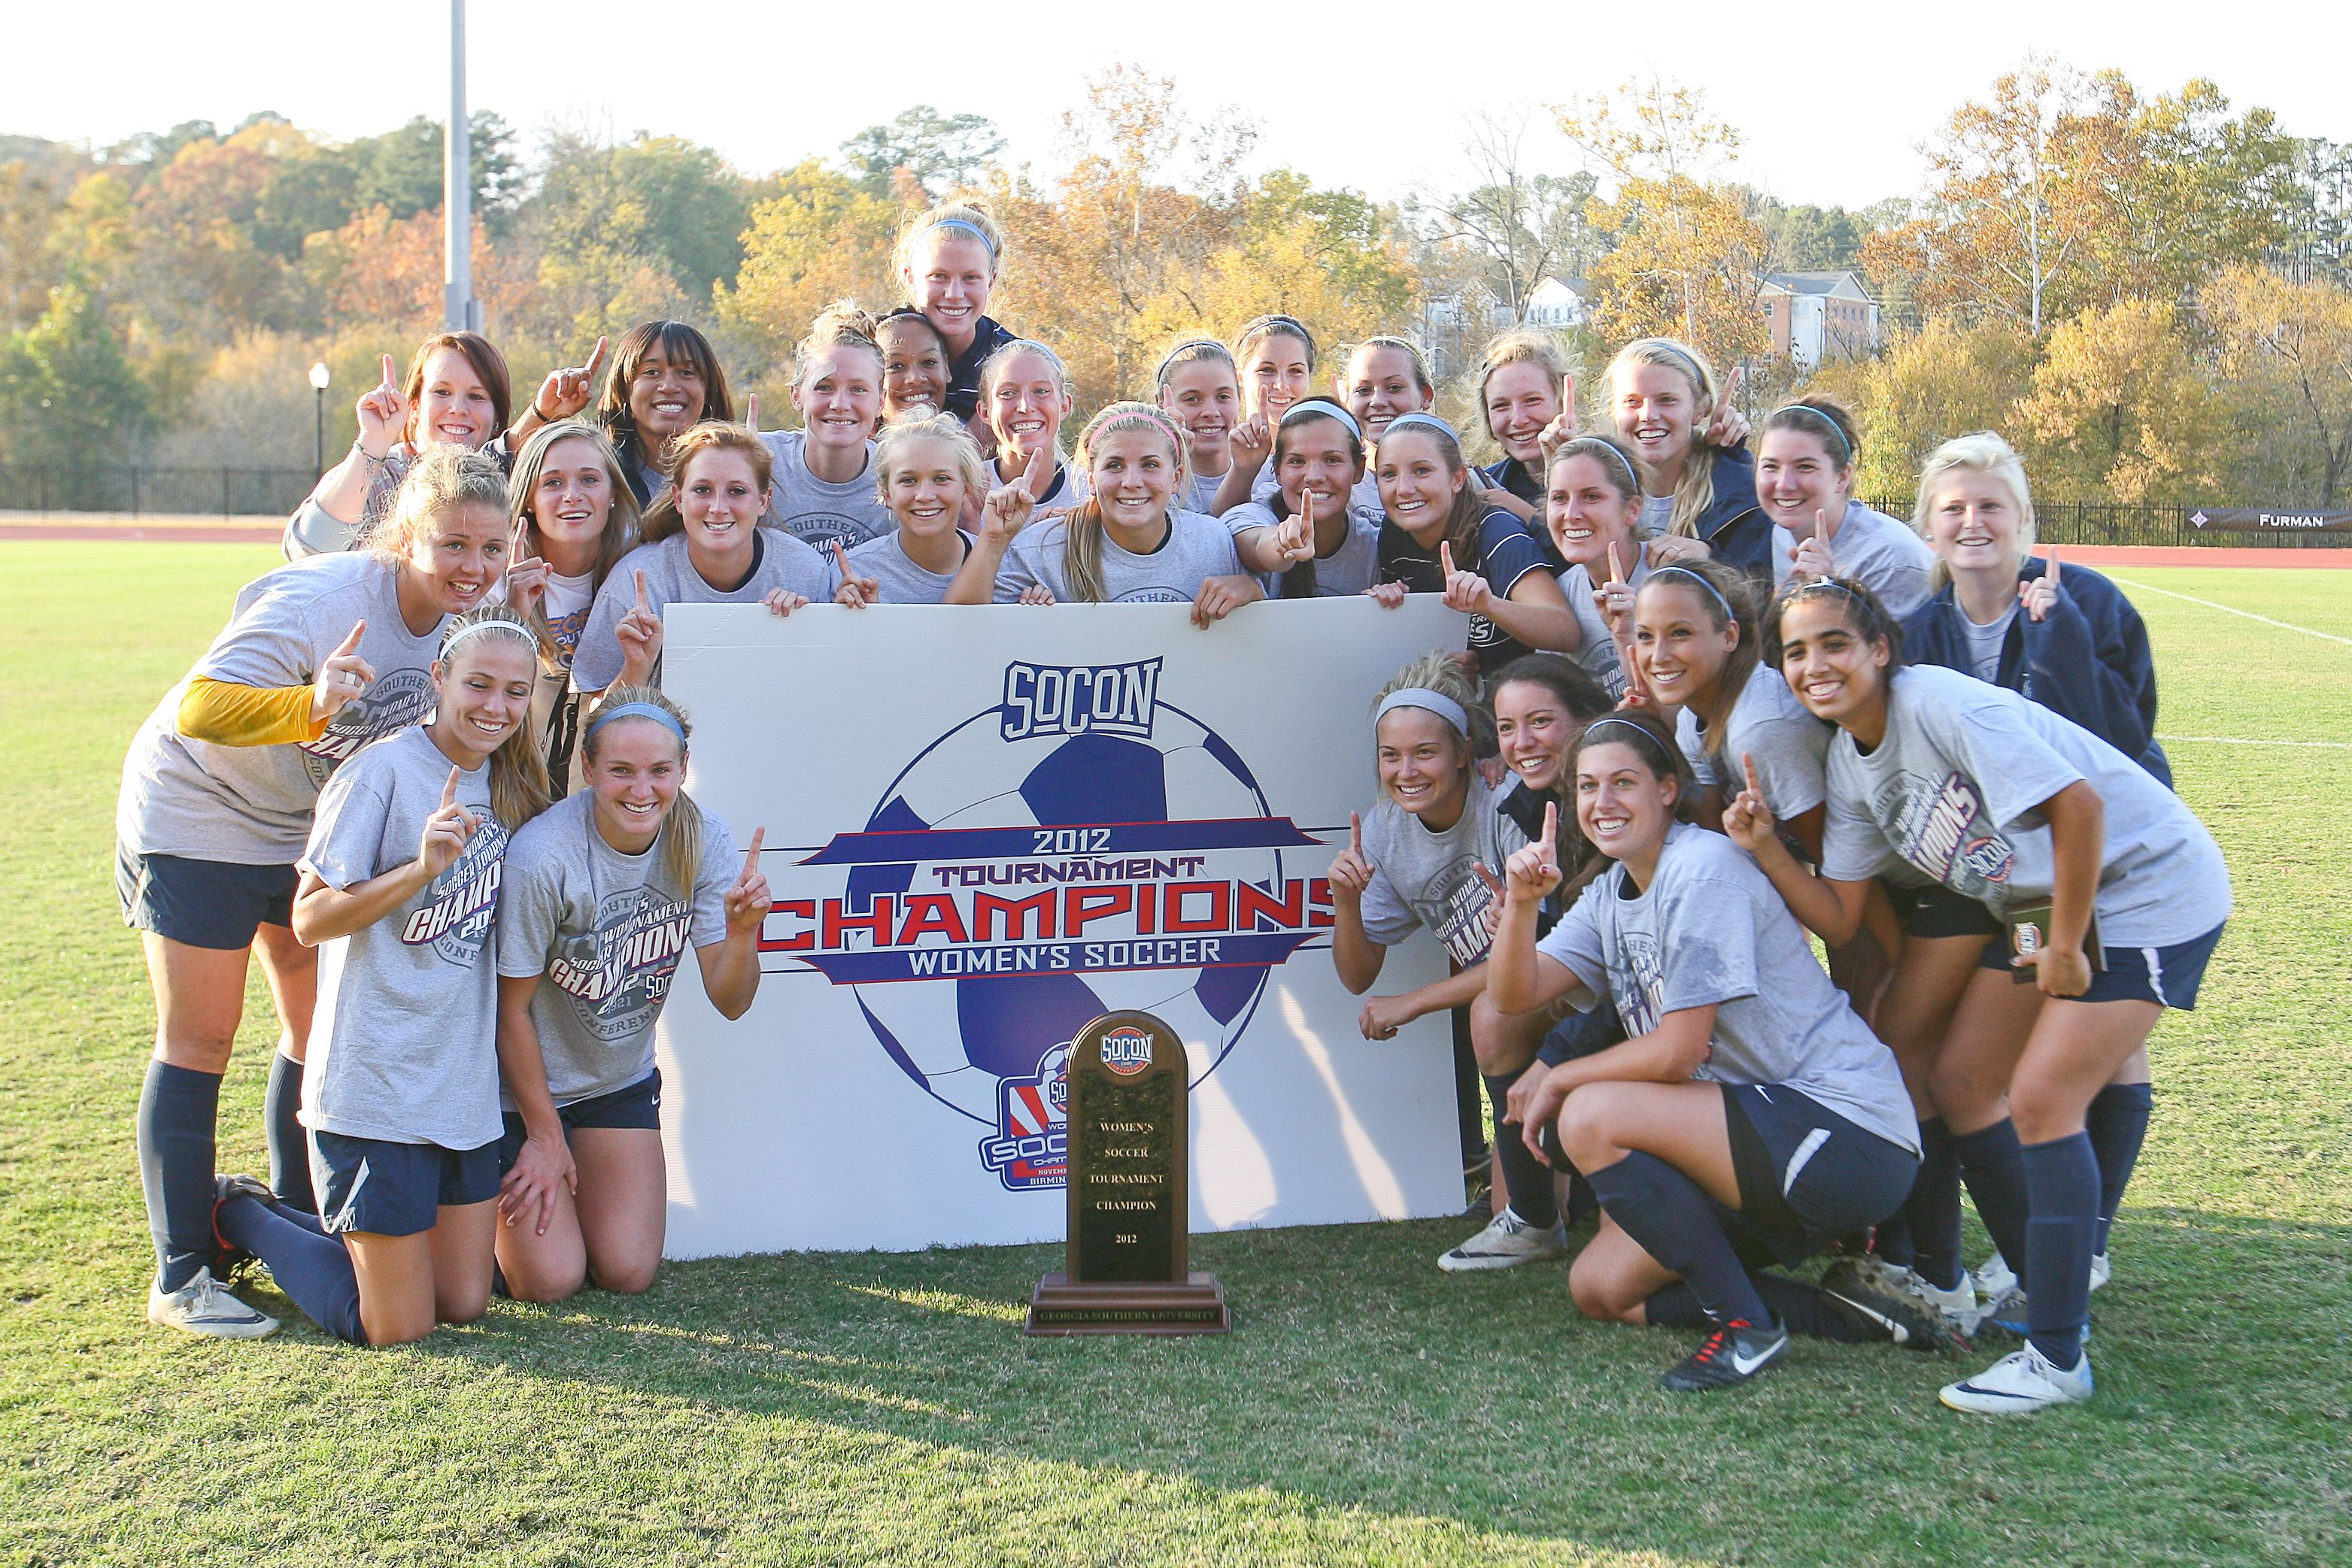 Georgia Southern Women S Soccer Brings Home Its First Ever Socon Title In 2012 Southern Women Womens Soccer Georgia Southern